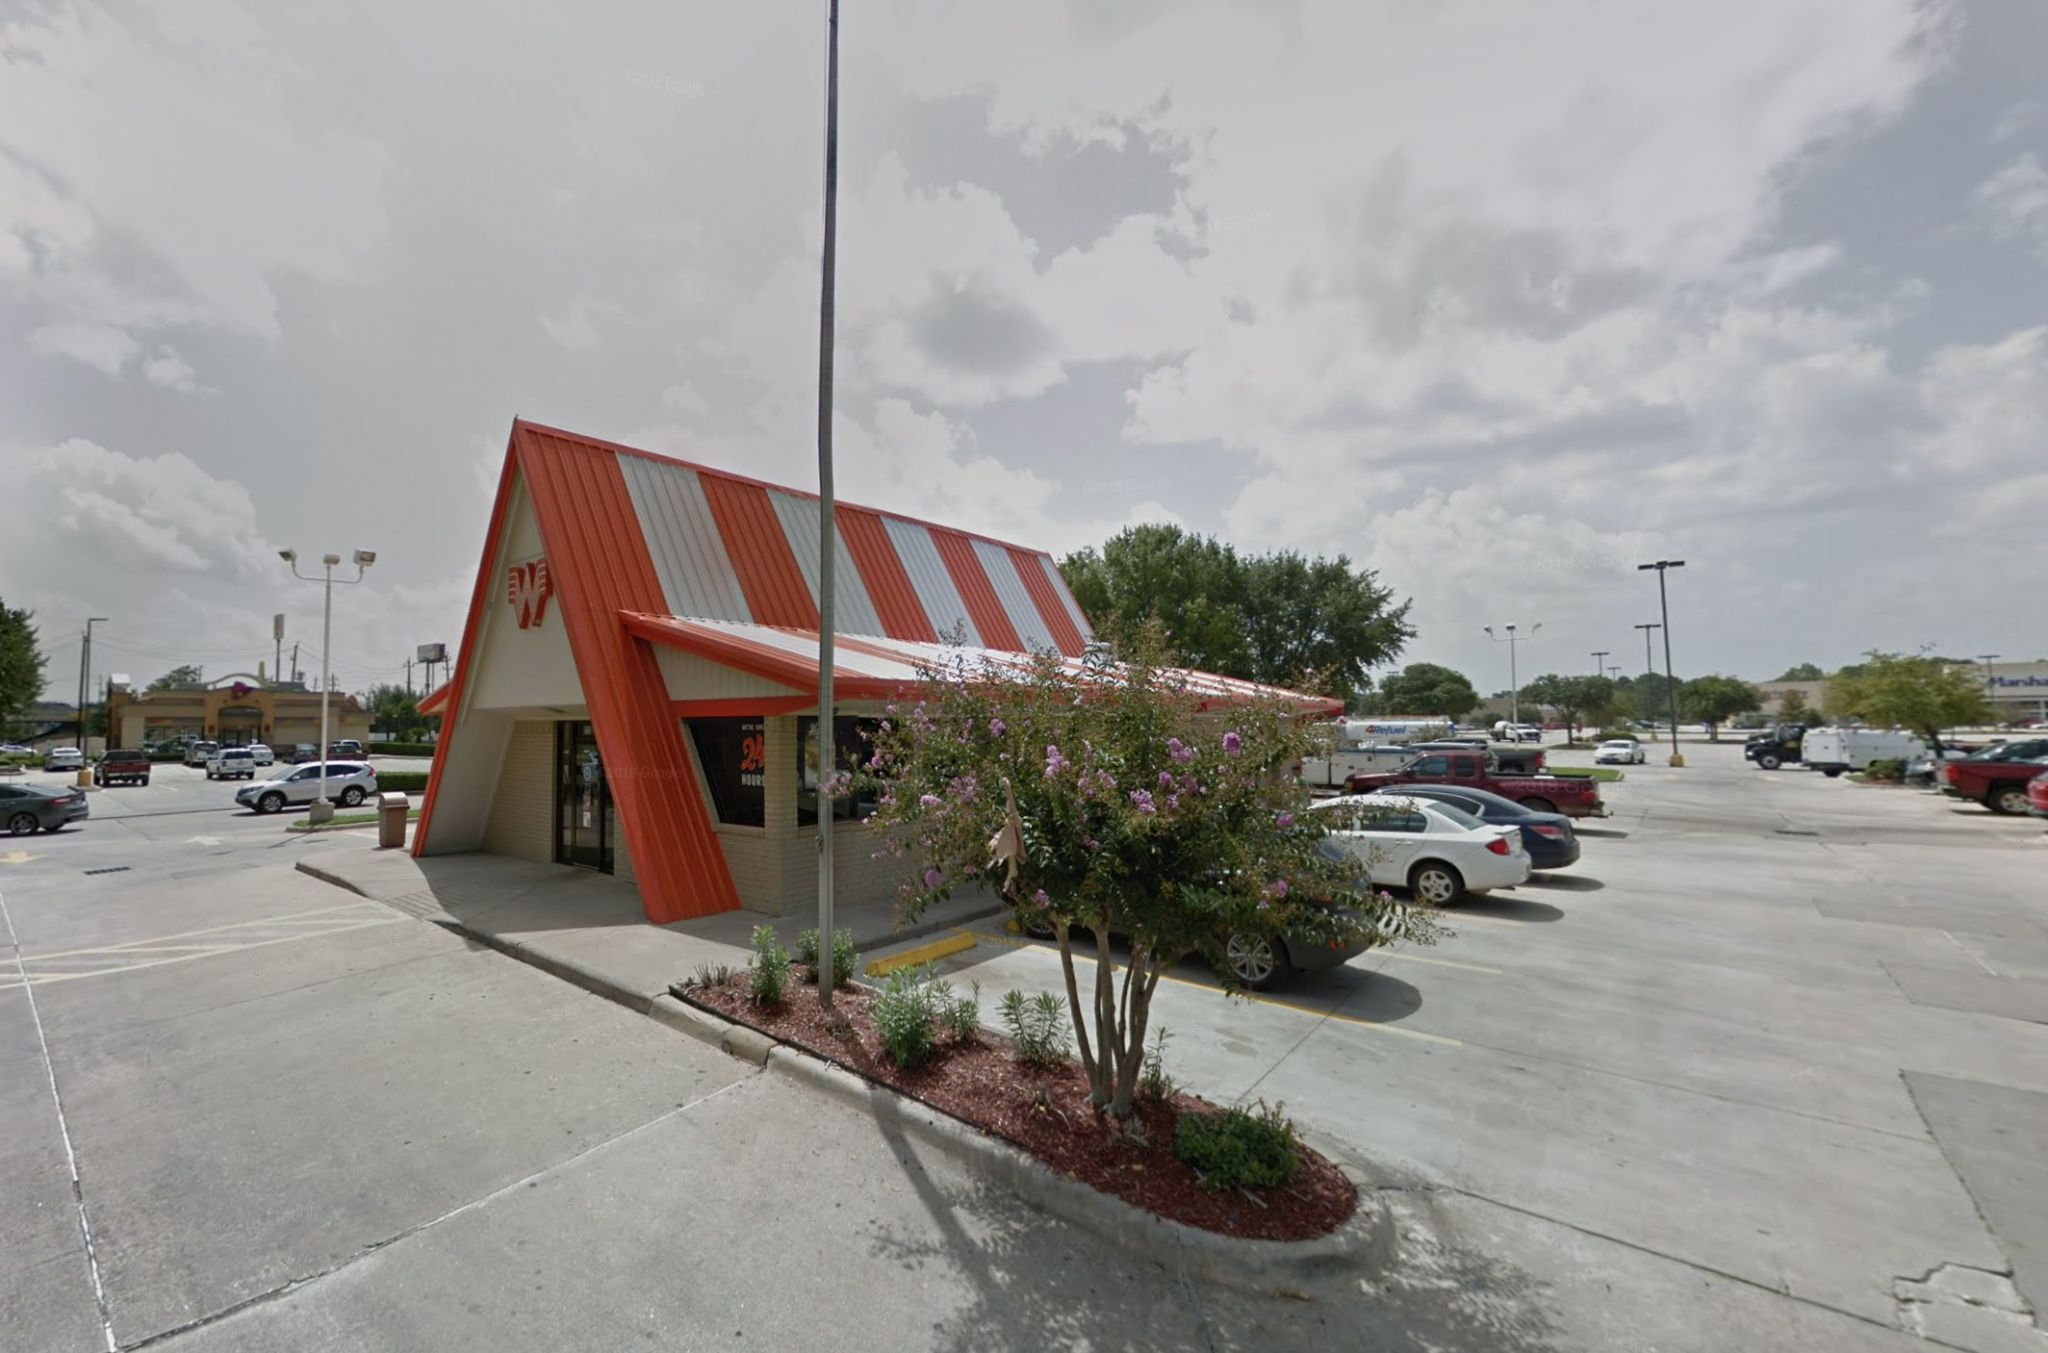 These are Houston's best Whataburger locations, according to Yelp